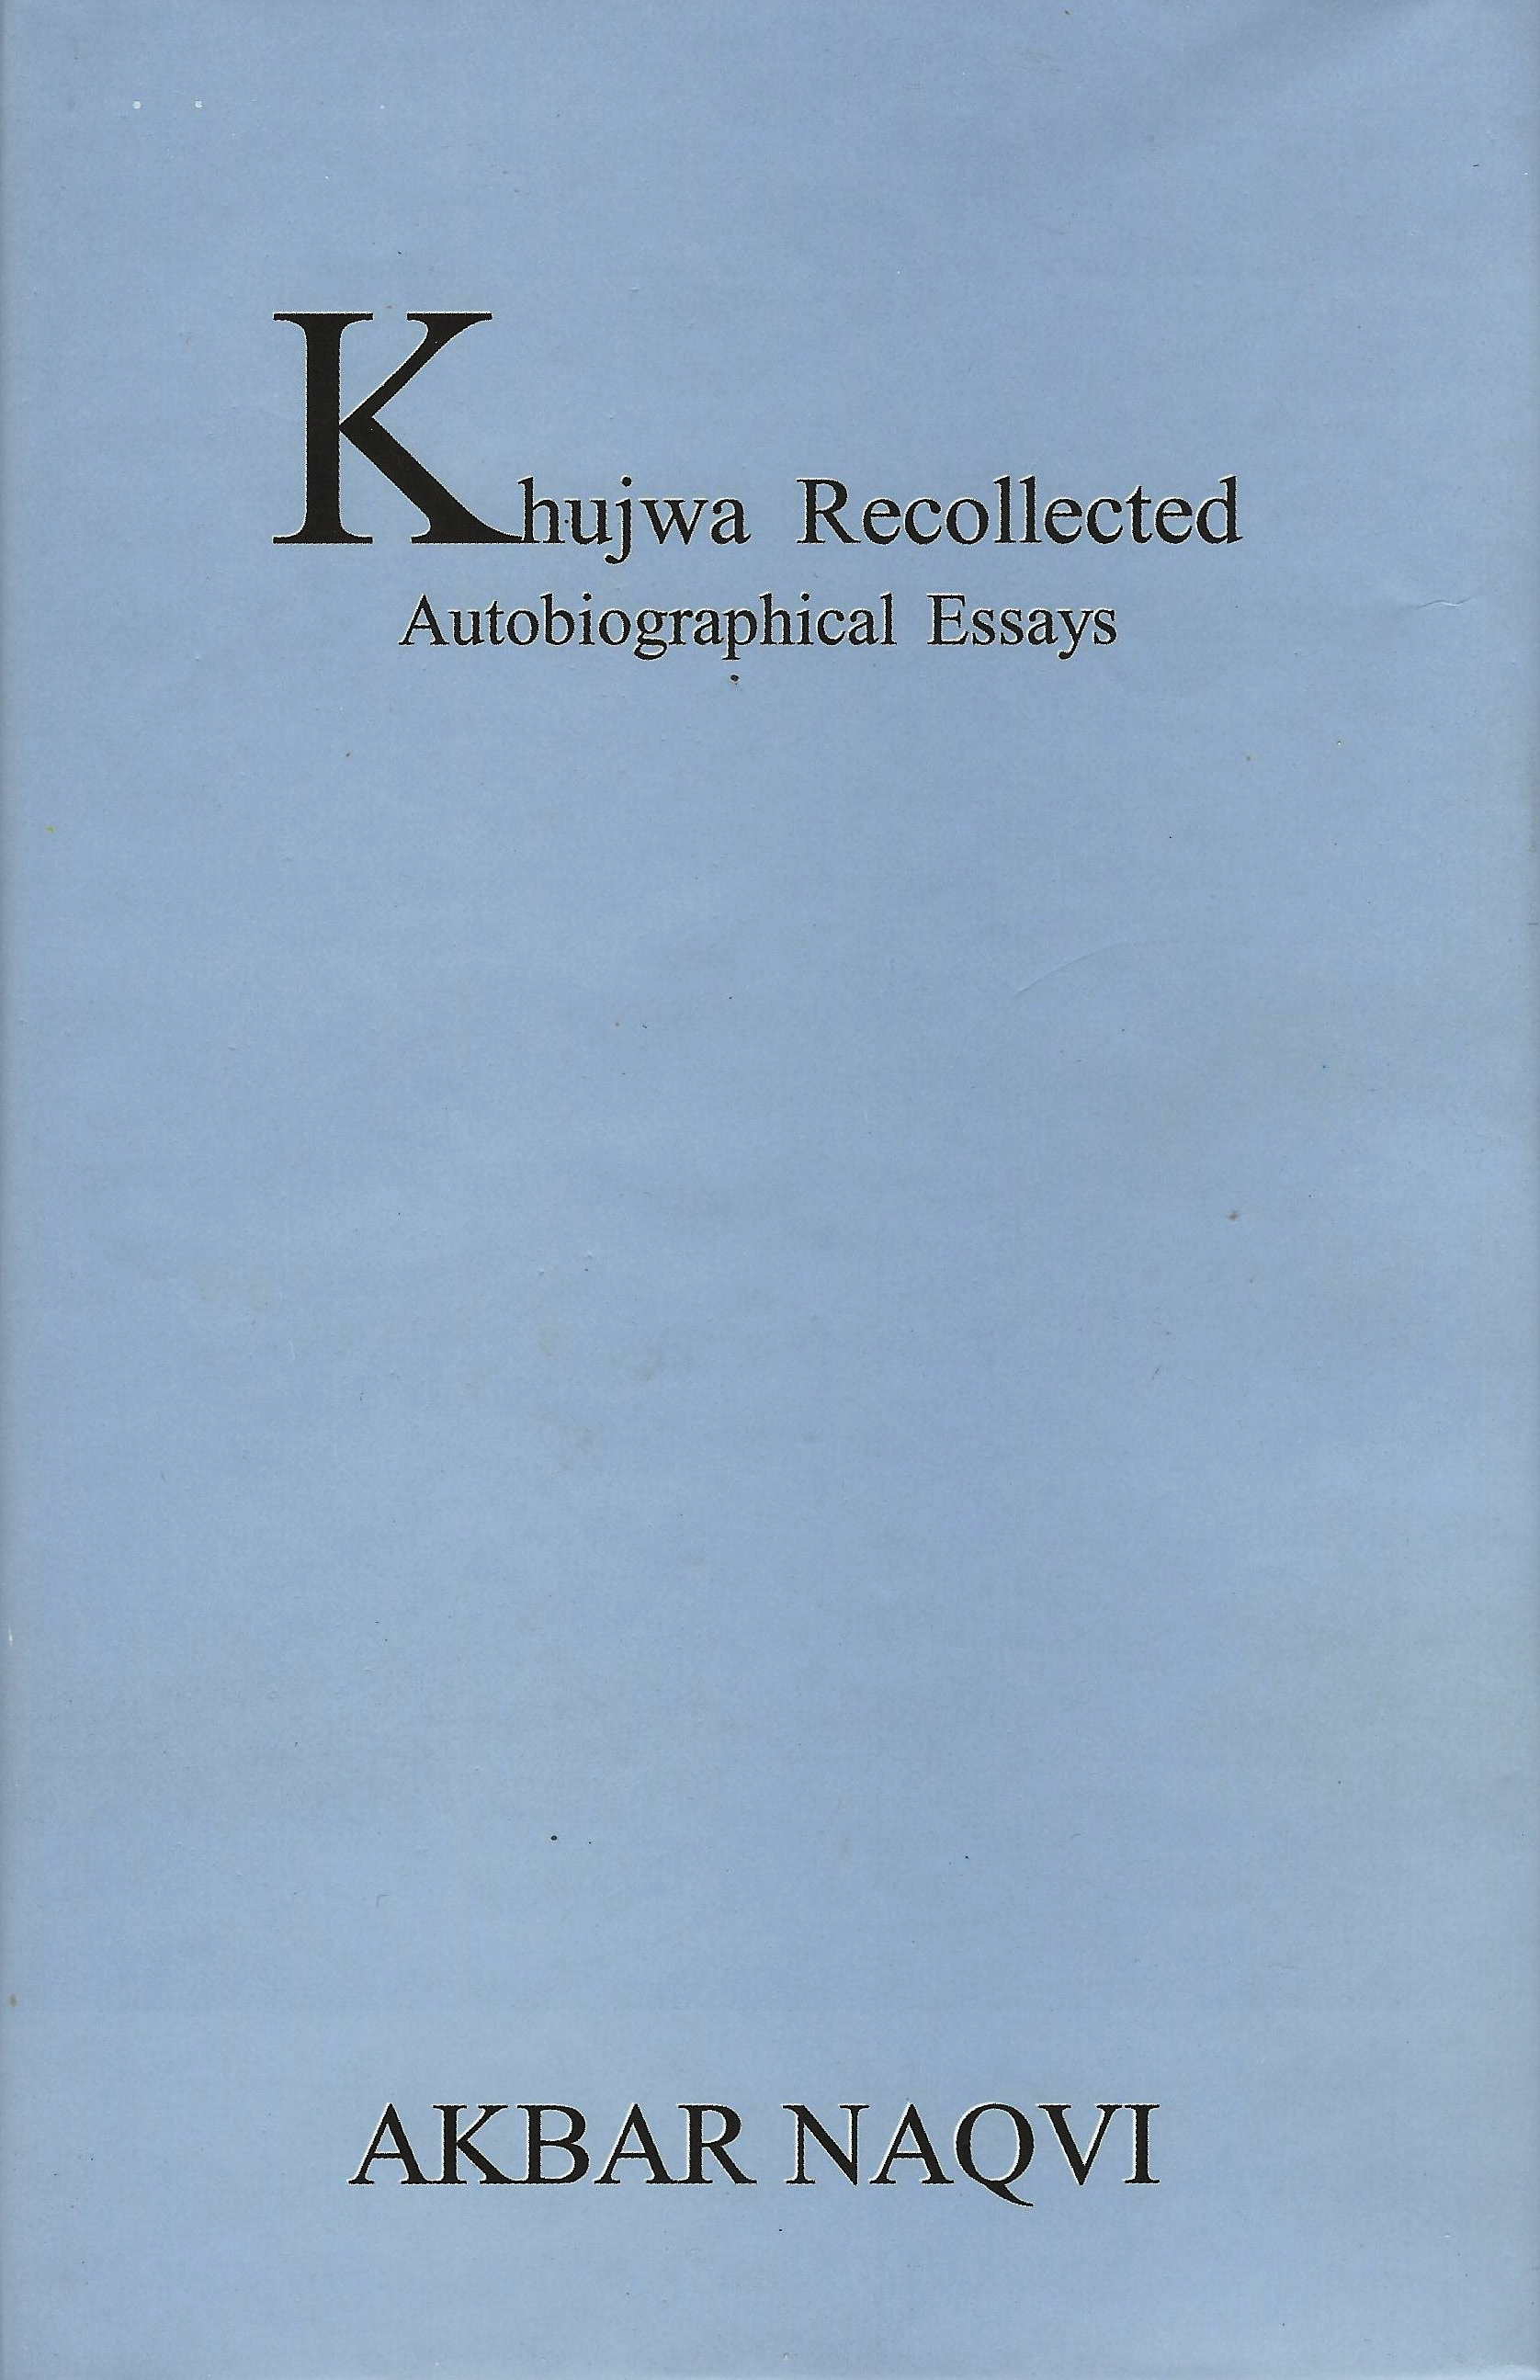 Khujwa Recollected by Dr.Akbar Naqvi Order a copy info@unicorngalleryblog.com